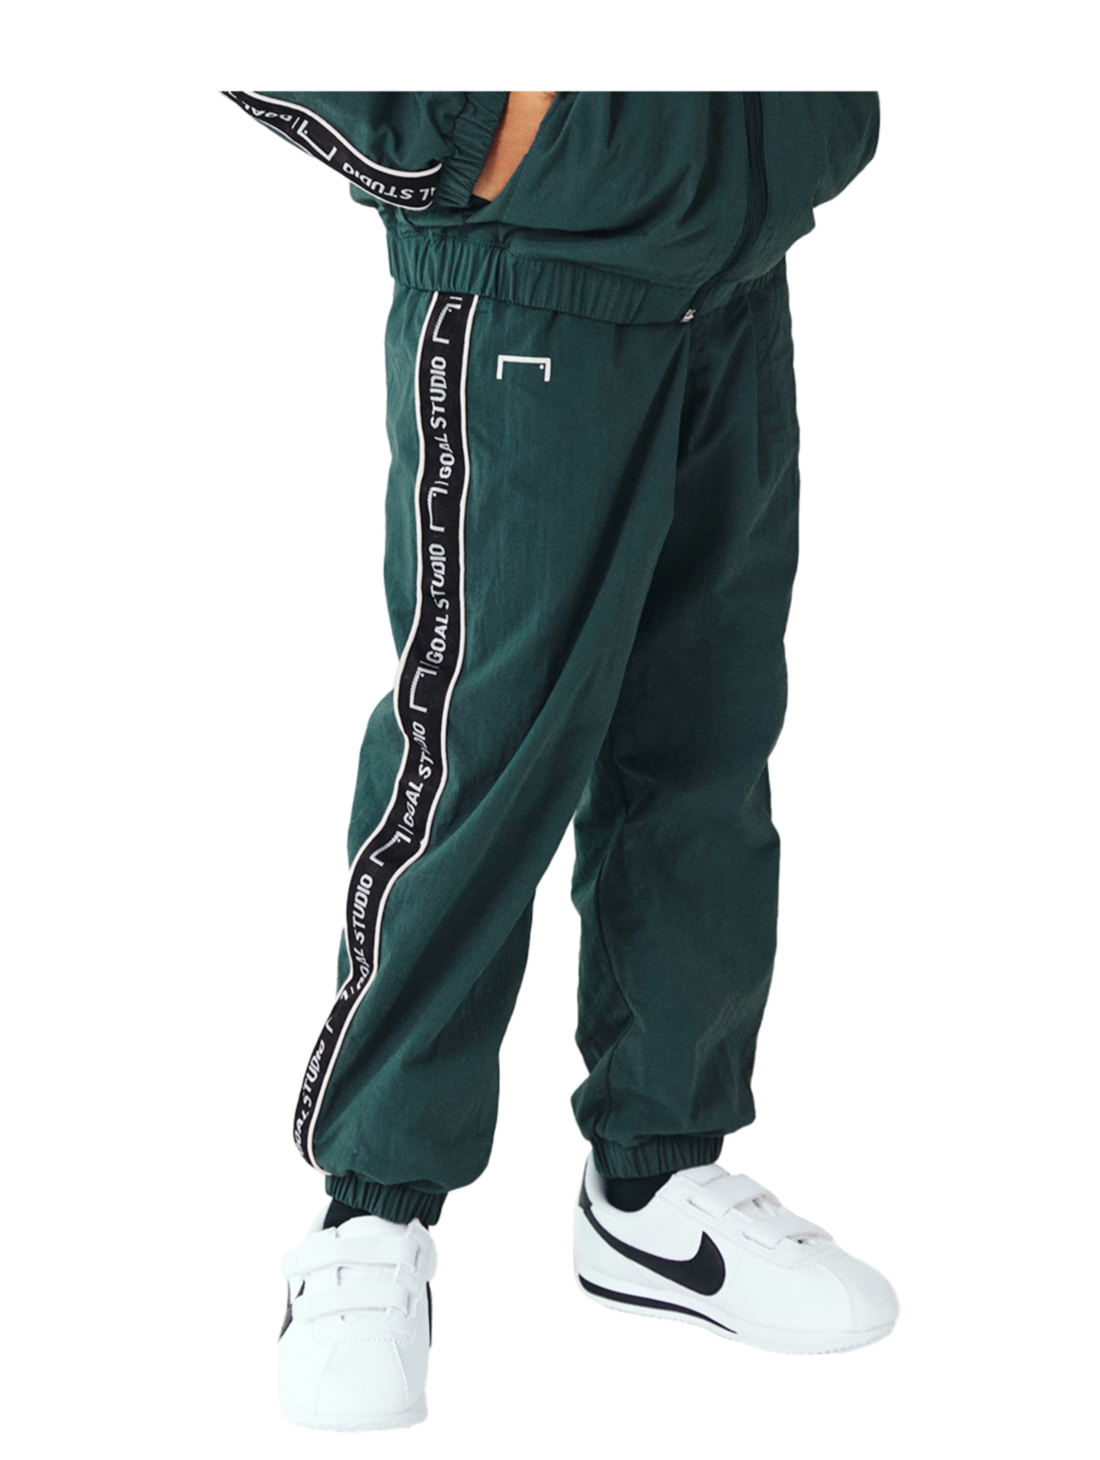 GOALSTUDIO (KIDS) SMALL LOGO TRACK PANTS - DARK GREEN